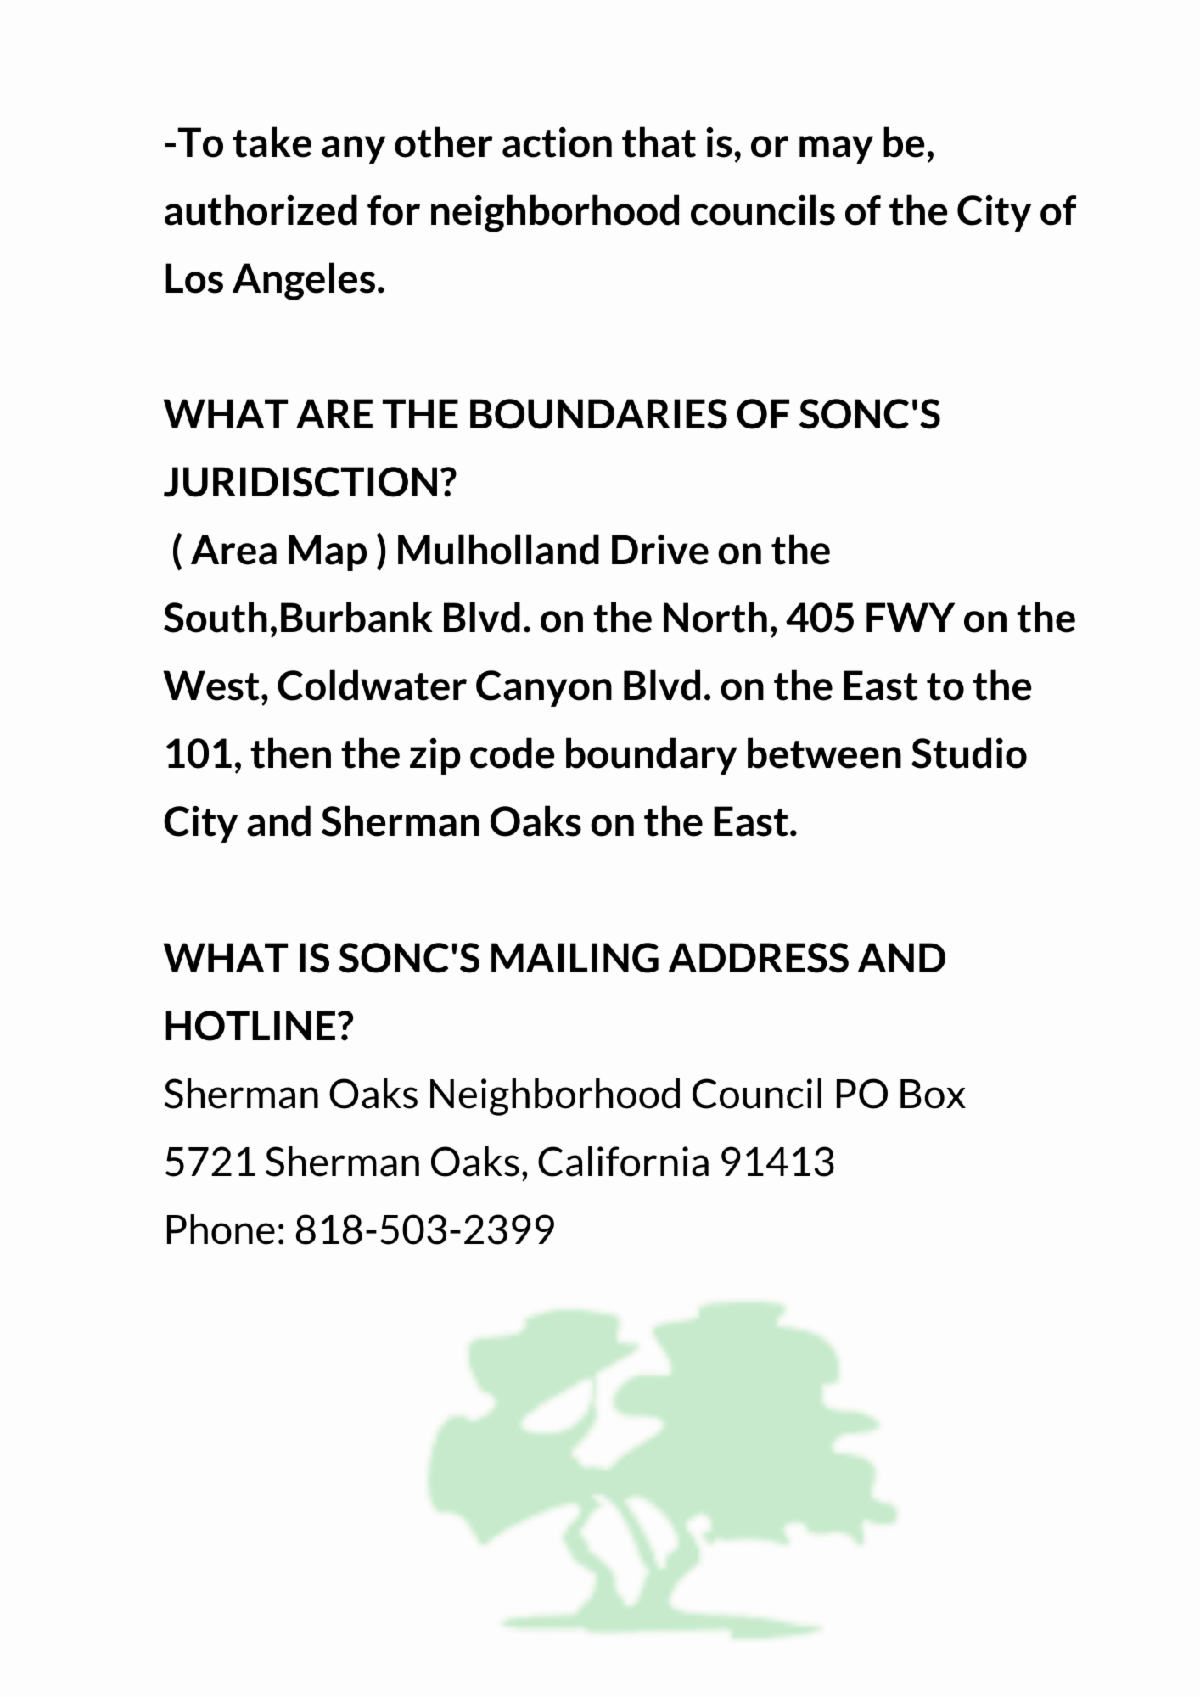 To take any other action that is or may be authorized for neighborhood councils of the City of Los Angeles. WHAT ARE THE BOUNDARIES OF SONCS JURIDISCTION  Area MapMulholland Drive on the South Burbank Blvd on the North 405 FWY on the West